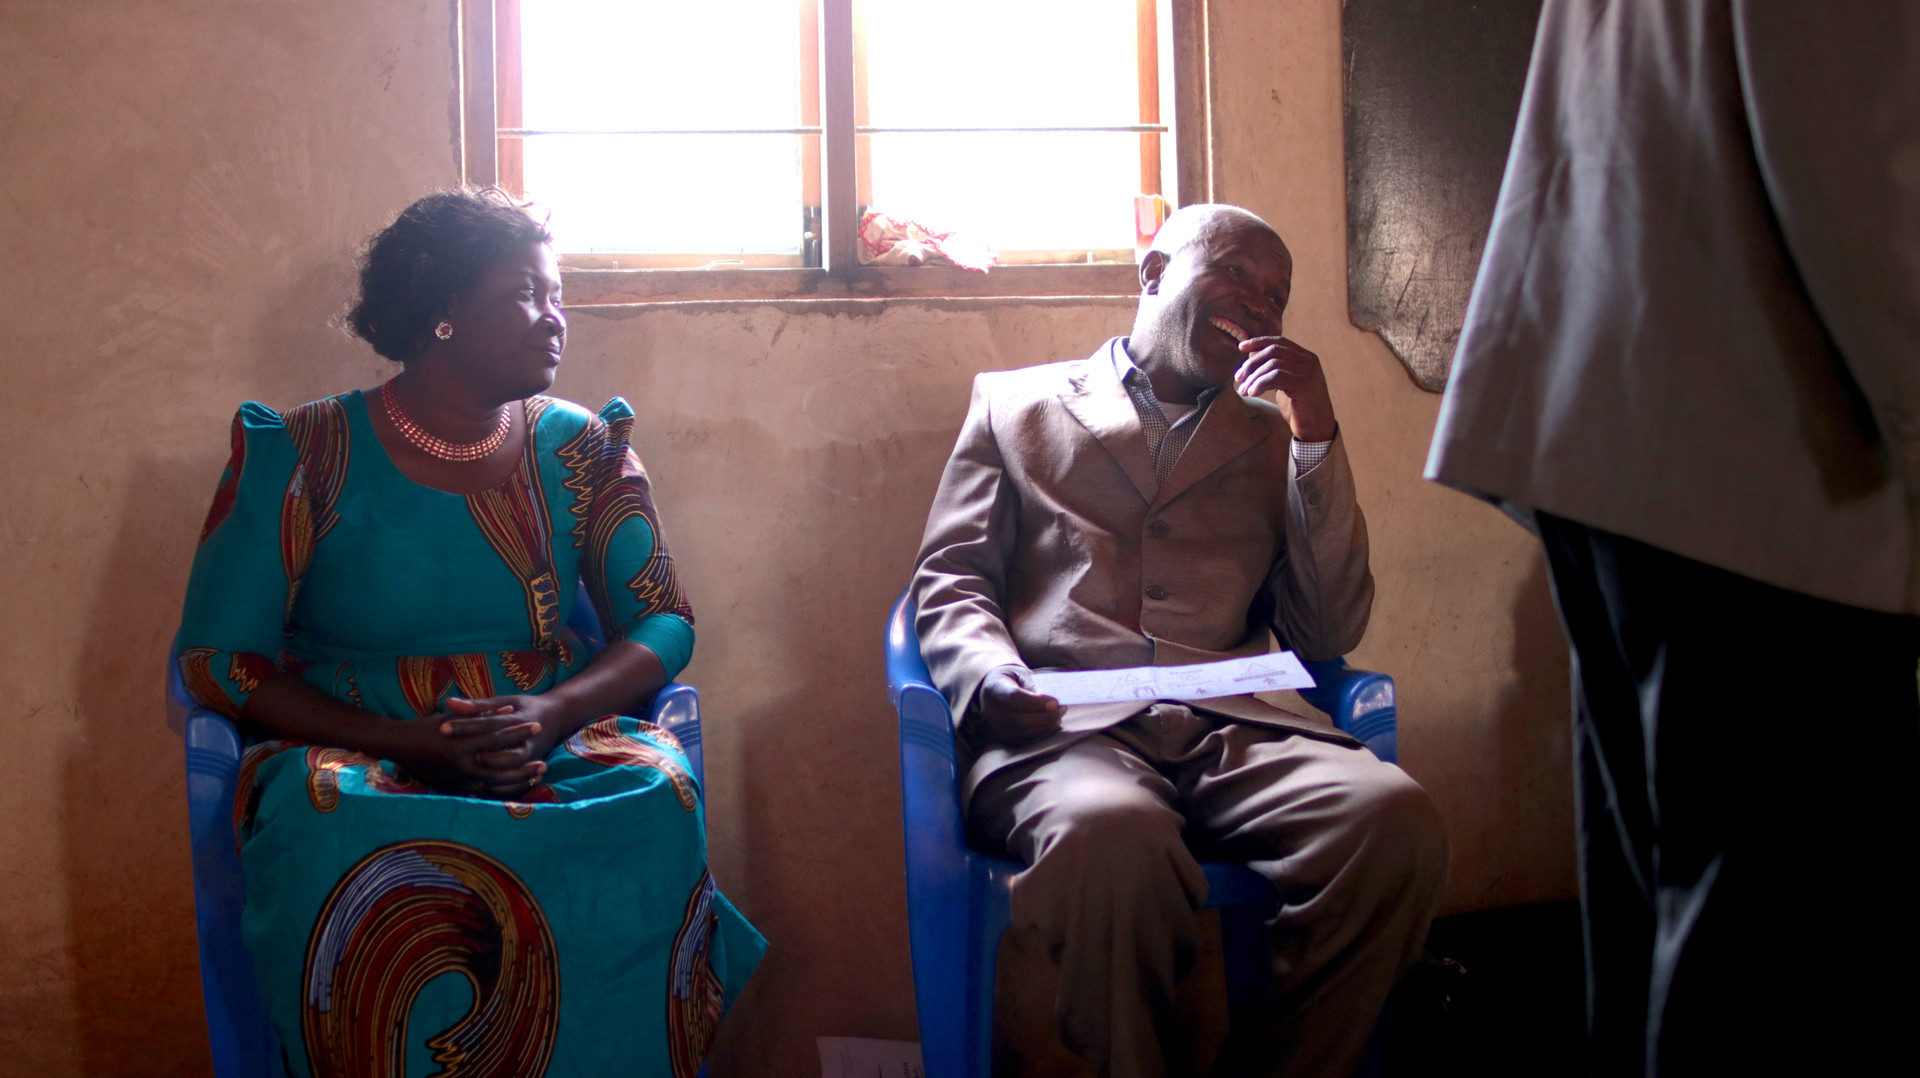 Our Host pastor (right) in Mafinga and one of the Iringa leadership team members